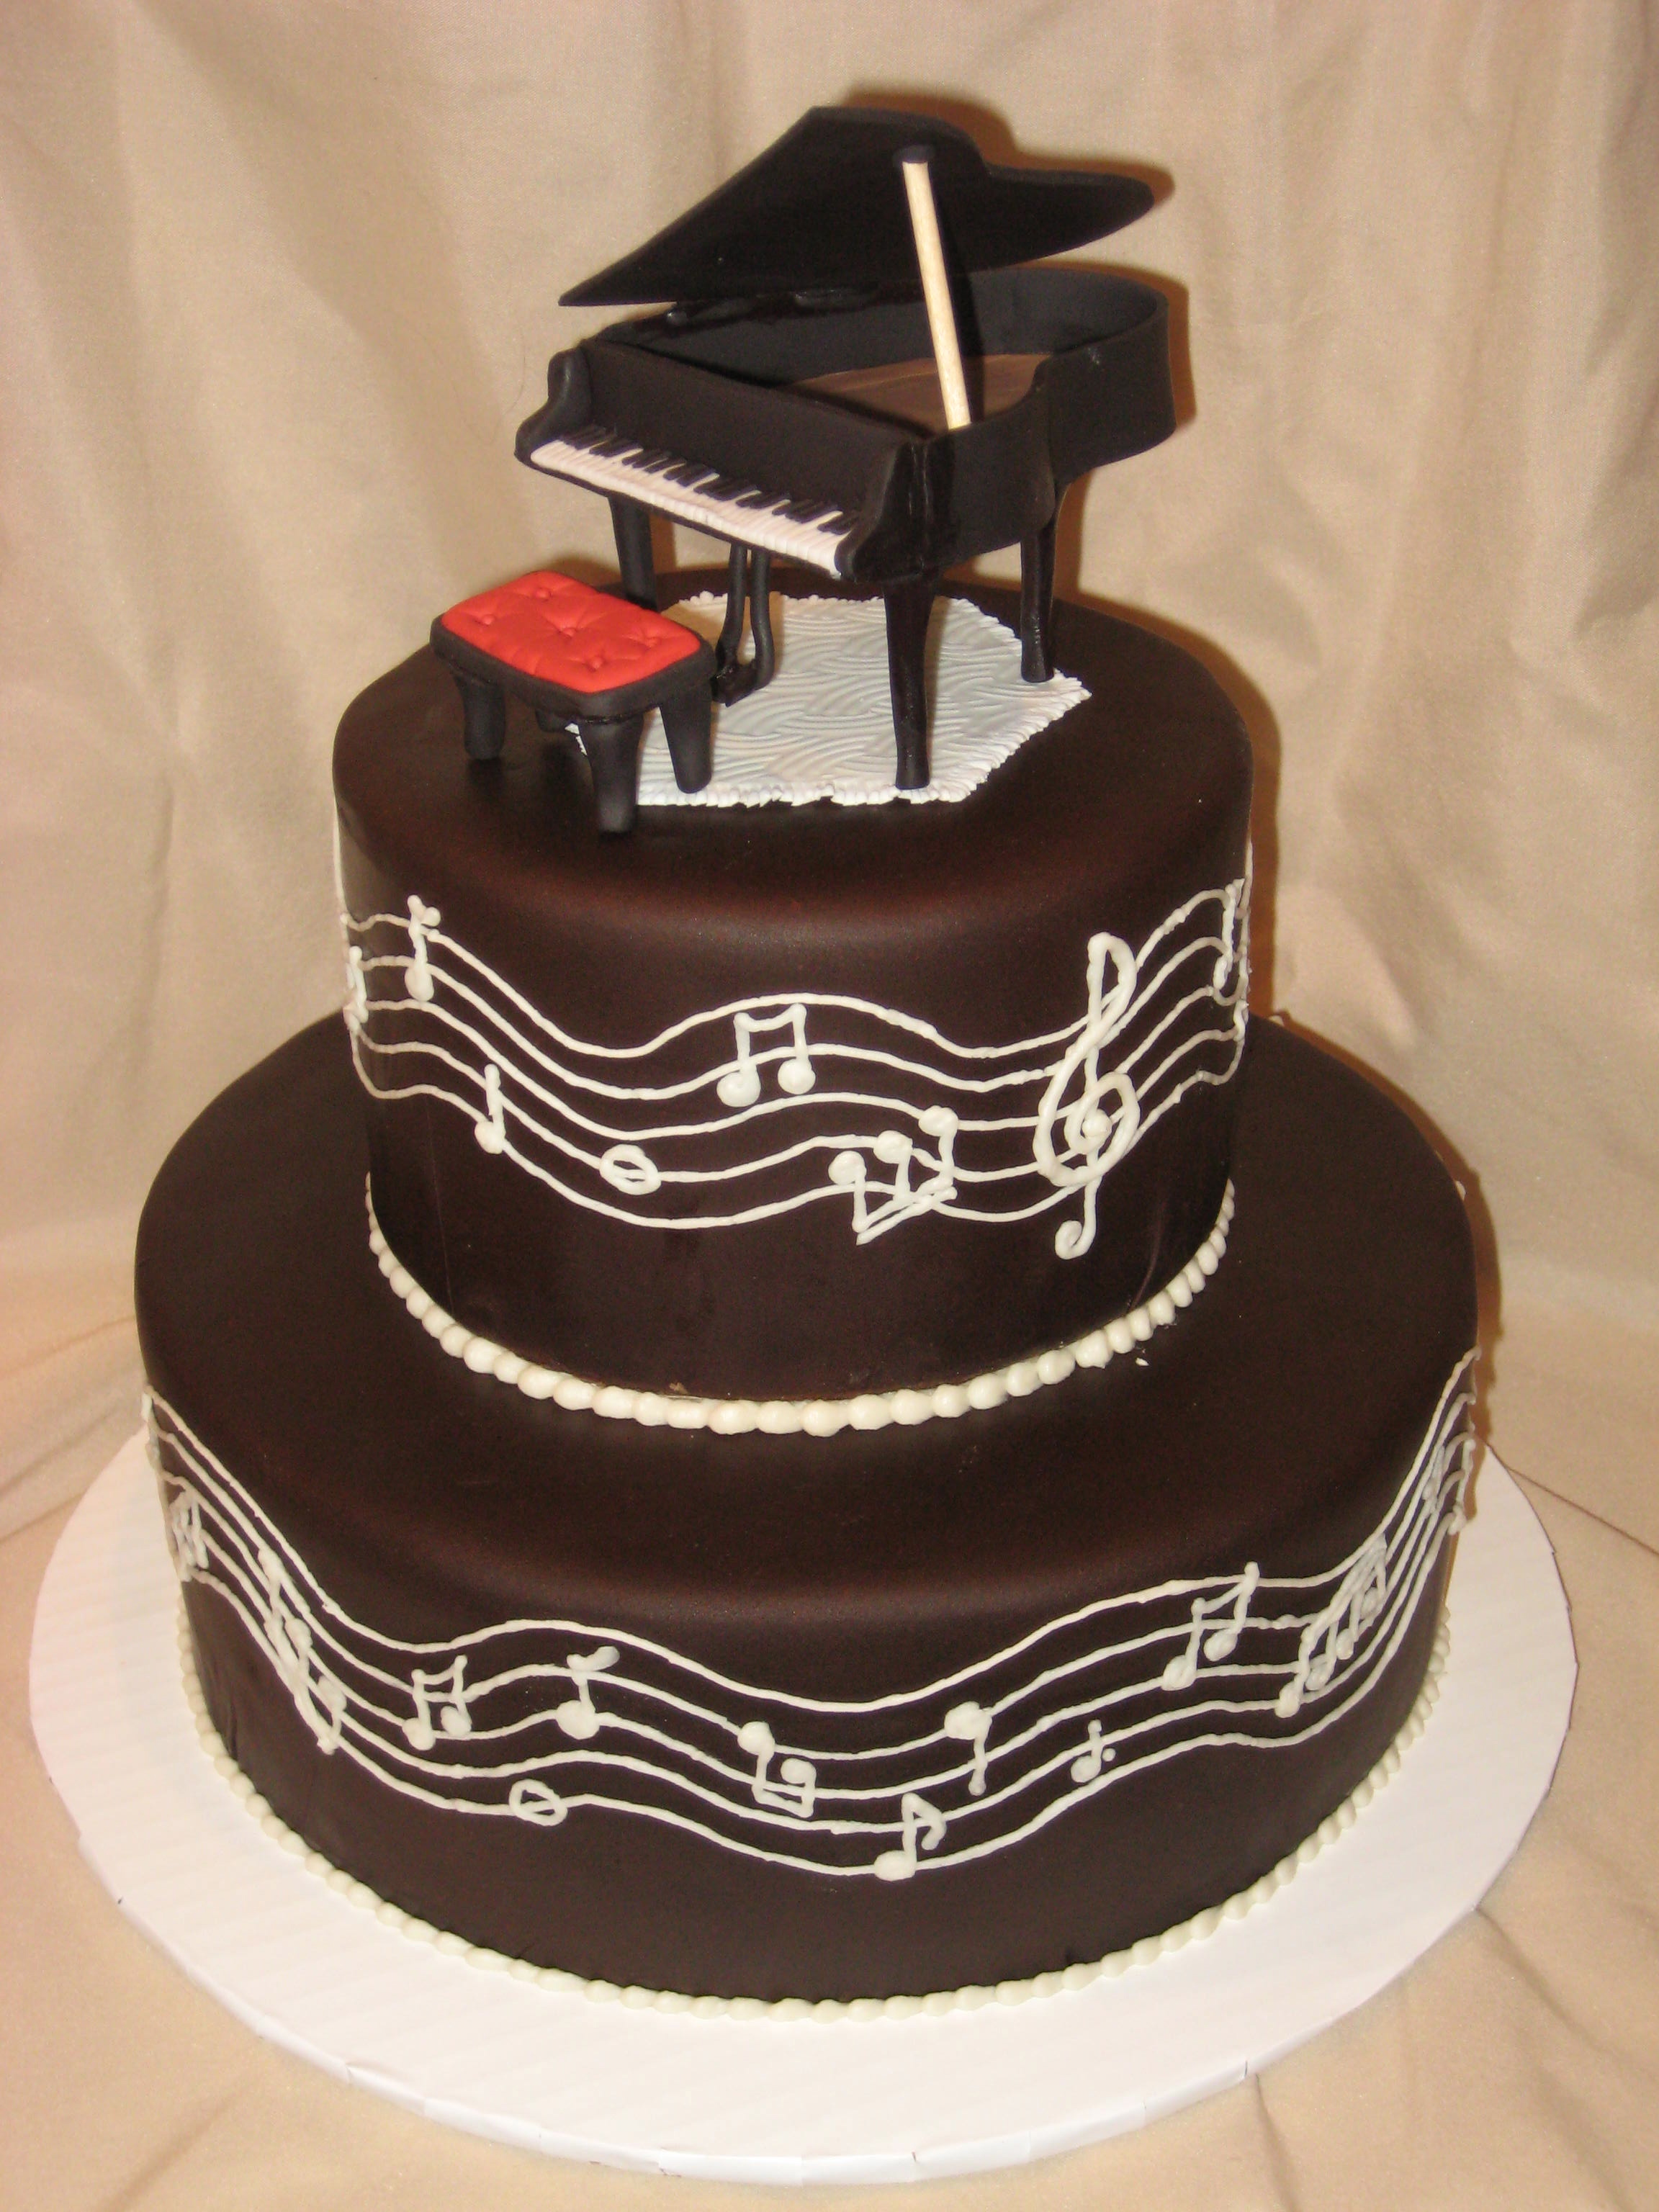 Happy Birthday Piano Cake